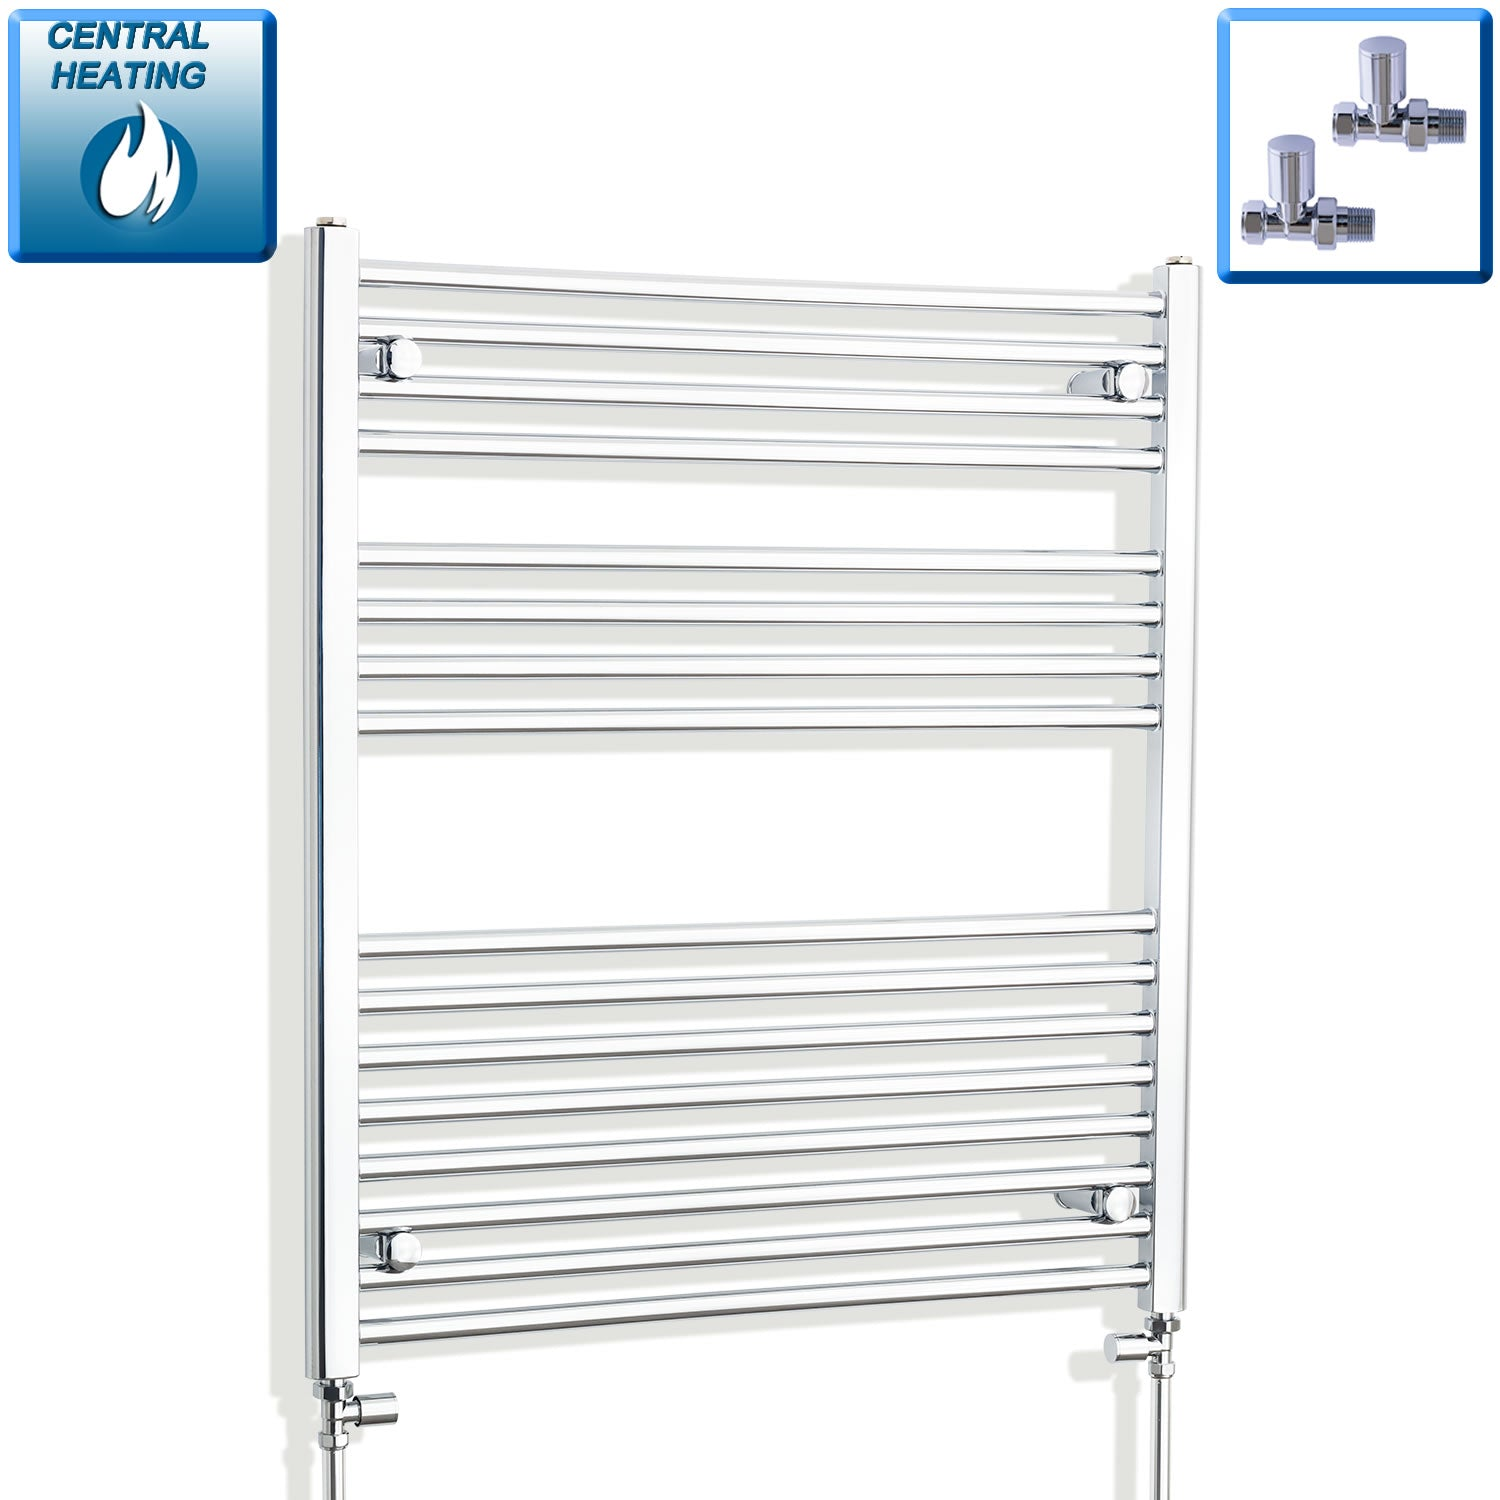 900mm Wide 900mm High Flat Chrome Heated Towel Rail Radiator HTR,With Straight Valve